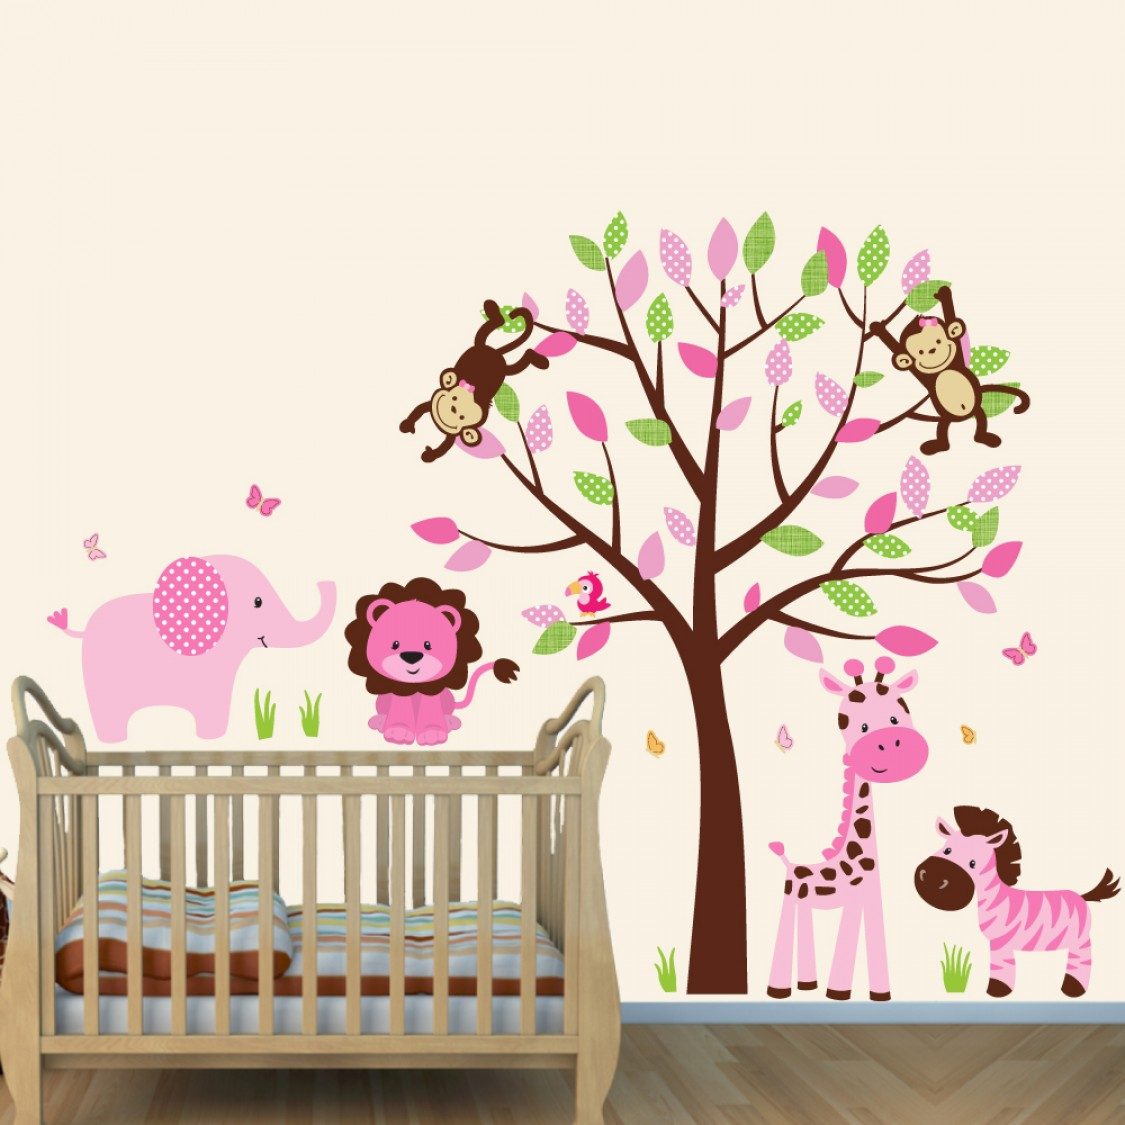 Pink And Brown Jungle Murals For Kids Rooms With Elephant Wall - Wall decals jungle